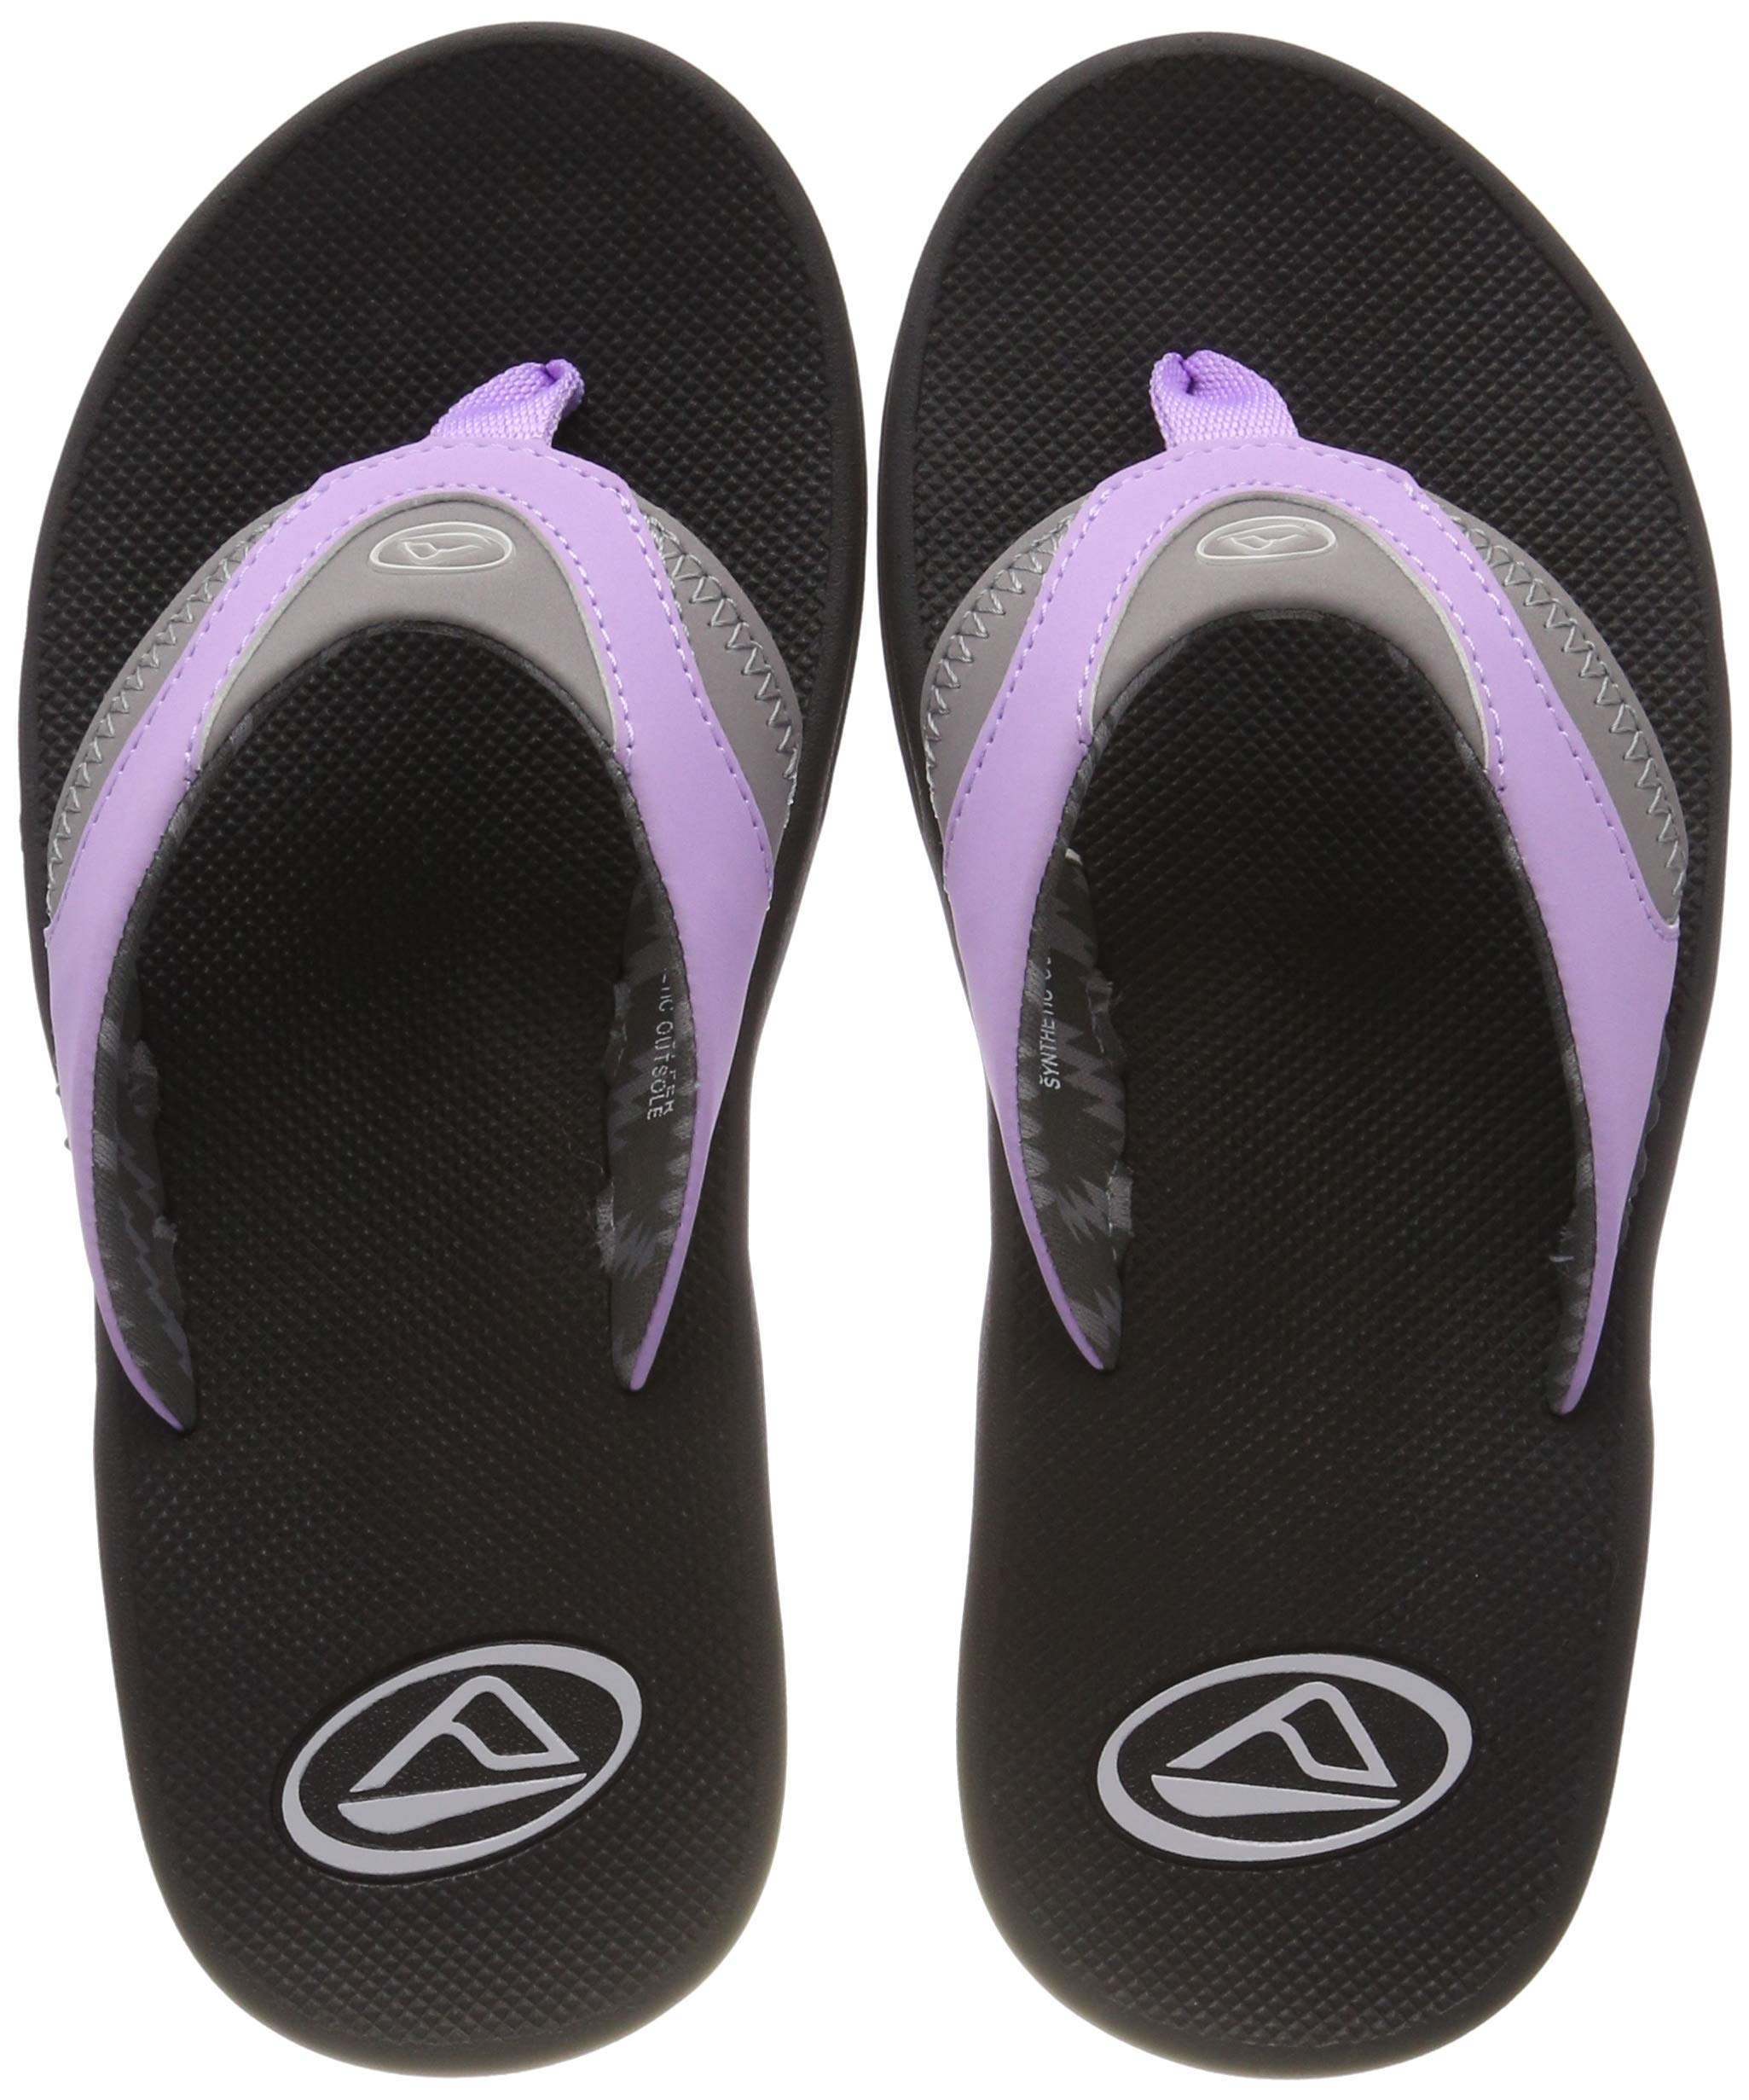 bfabce8f06c0 Best Rated in Women s Flip-Flops   Helpful Customer Reviews - Amazon.com